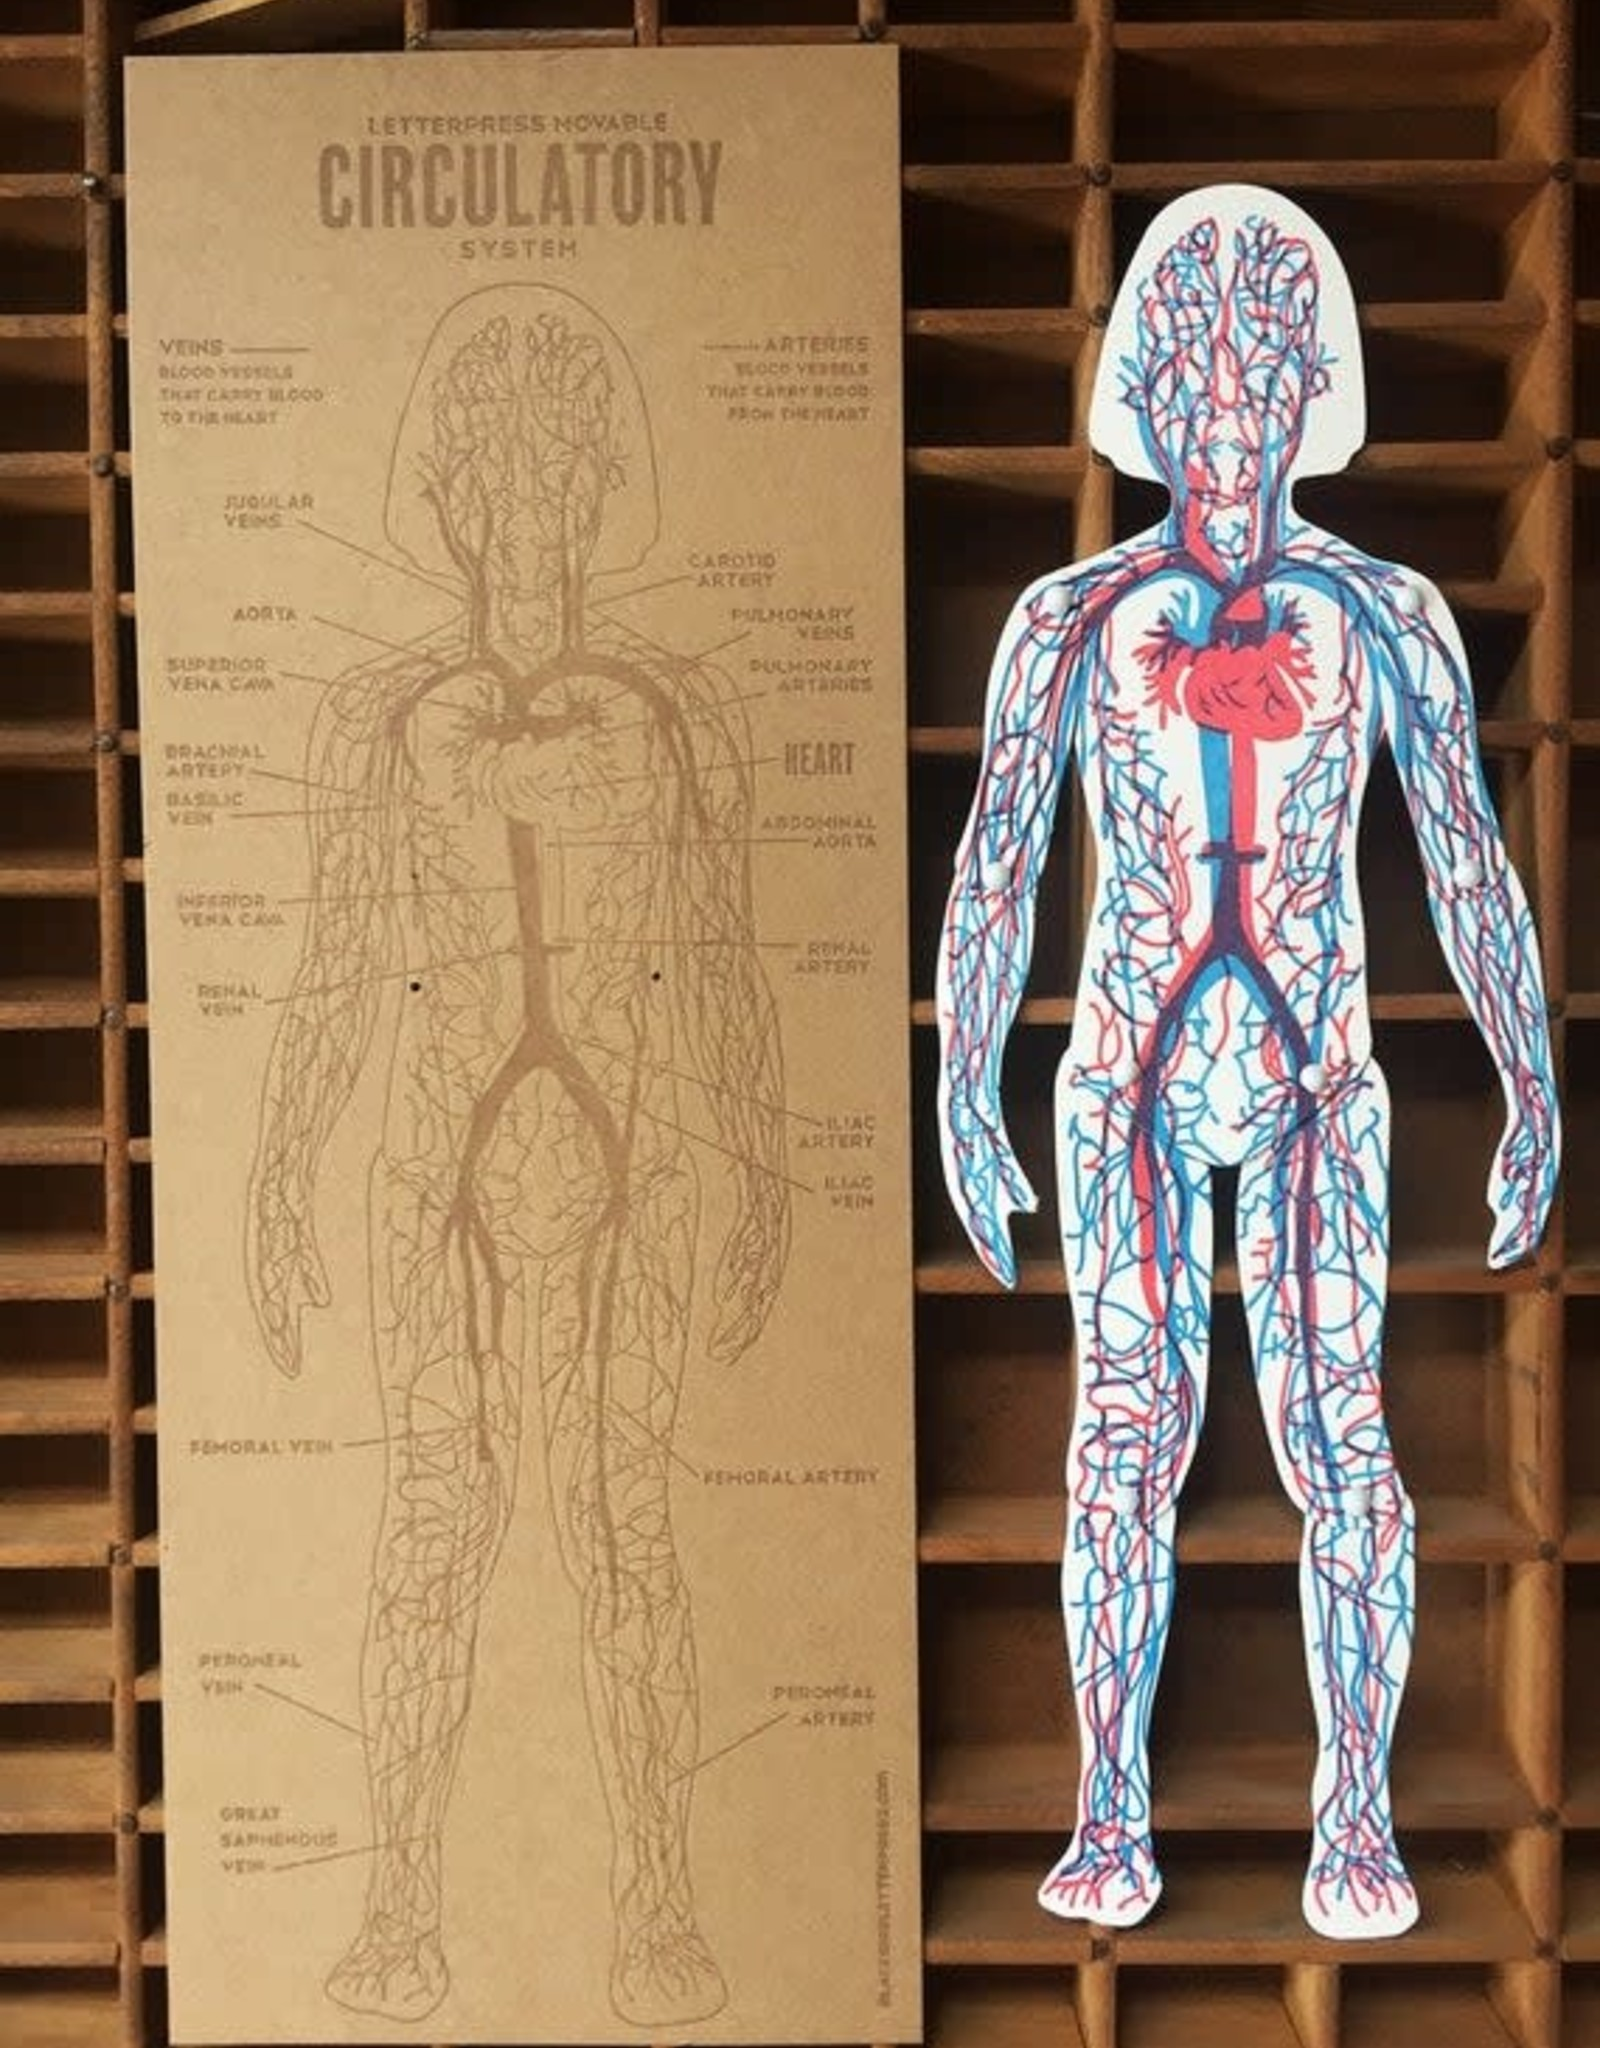 Letterpress Moveable Circulatory System - Large Articulating Paper Figure